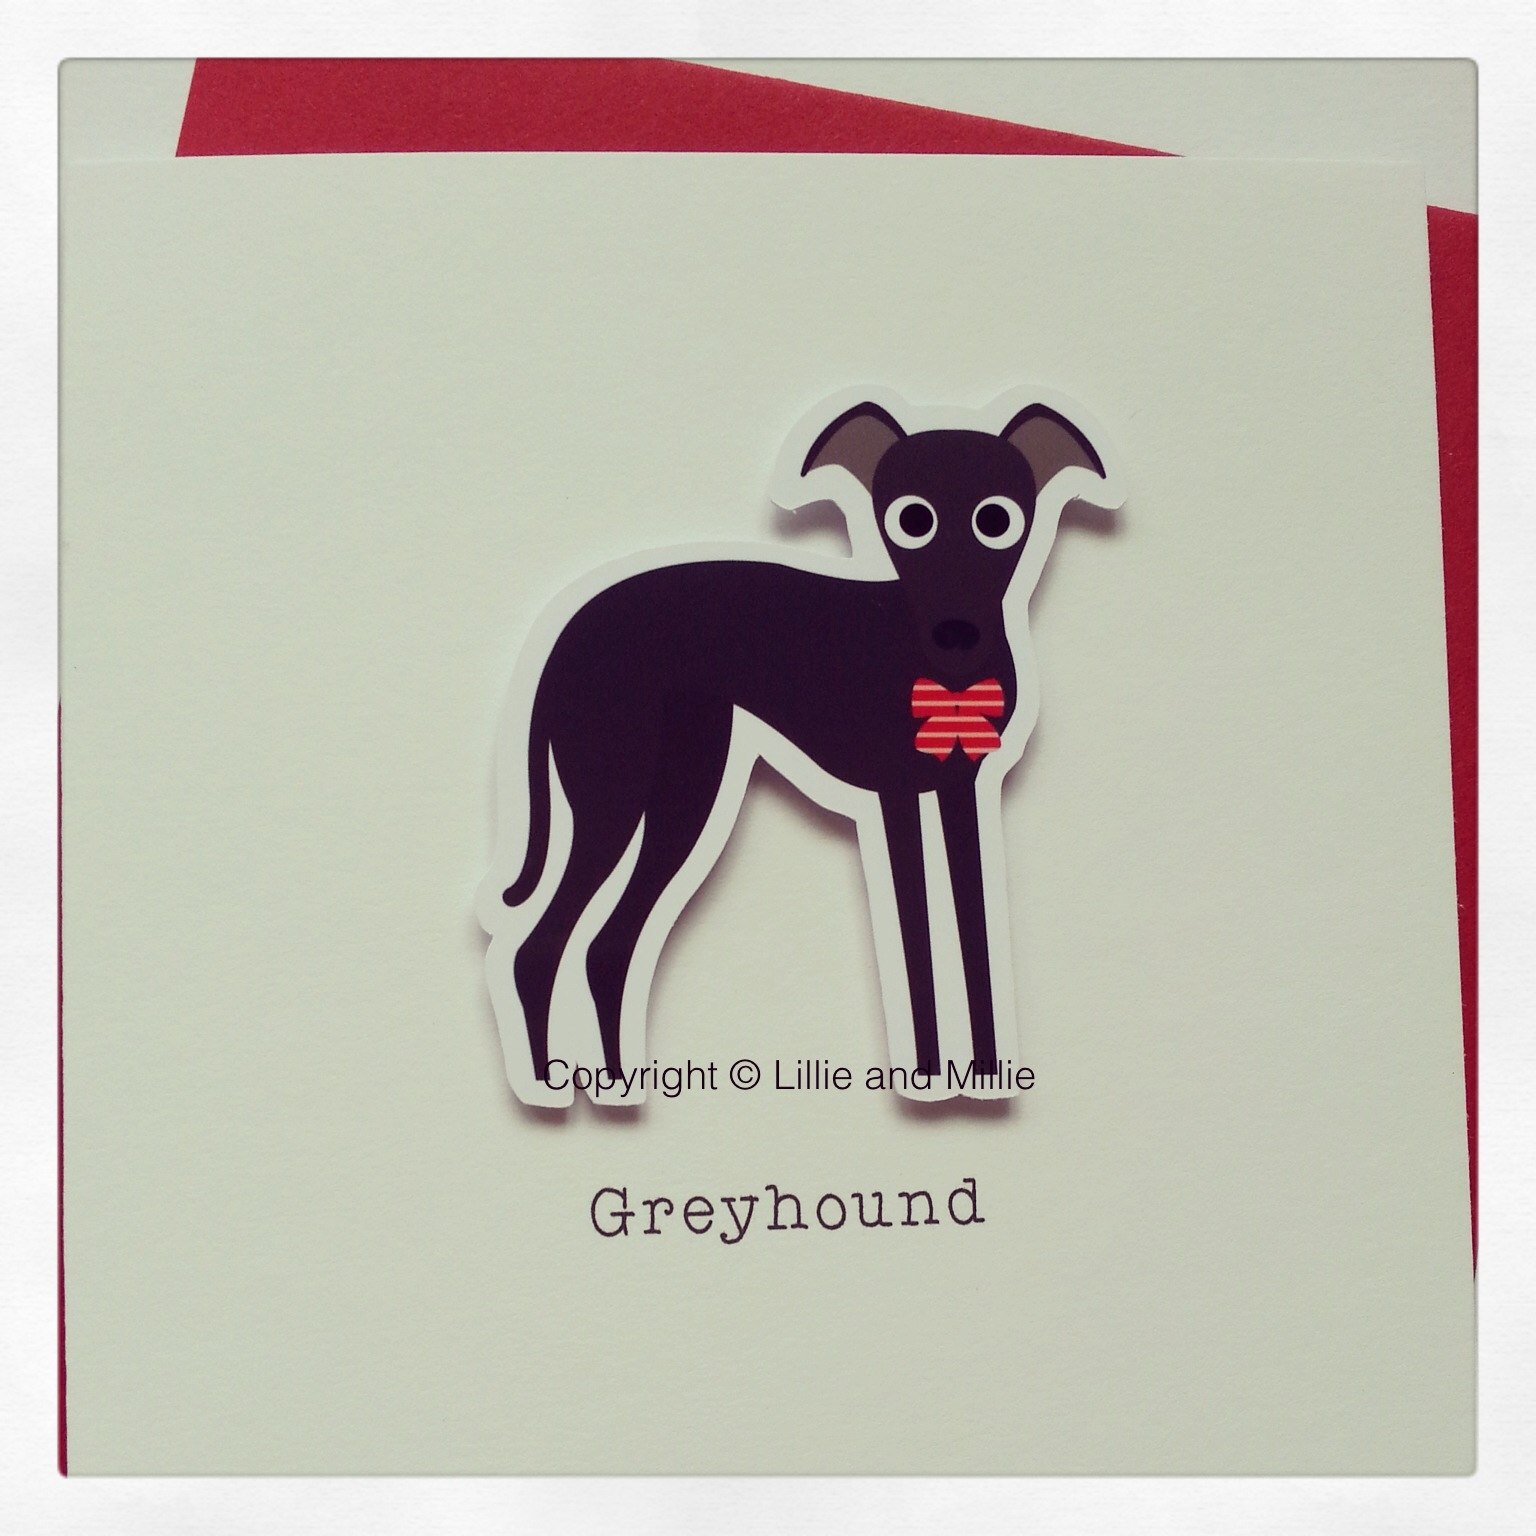 Cute and Cuddly Greyhound Greetings Card